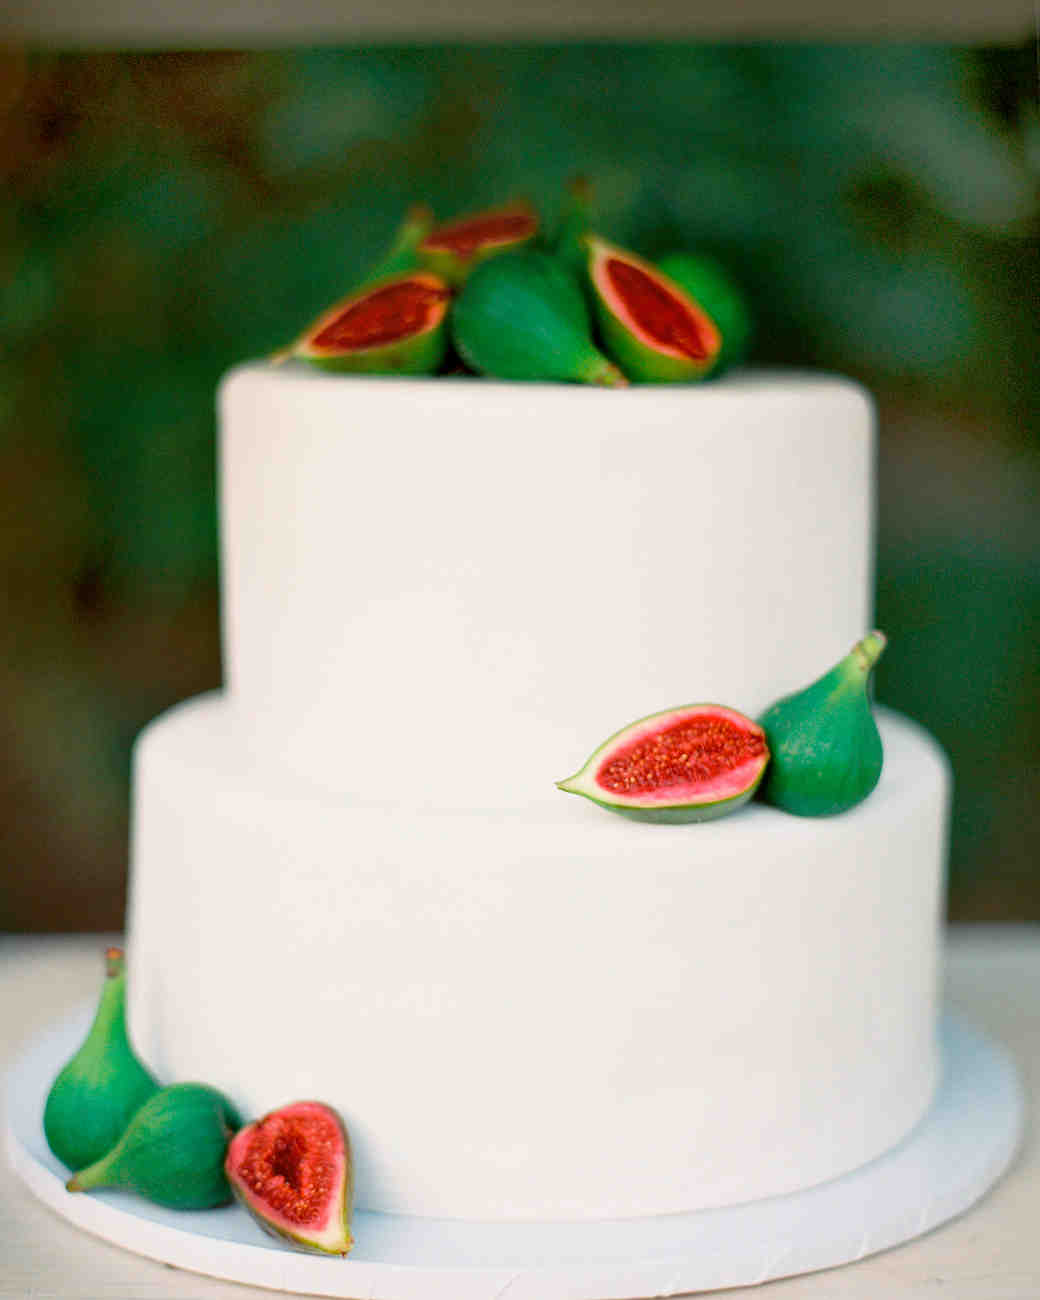 40 Simple Wedding Cakes That Are Gorgeously Understated | Martha ...